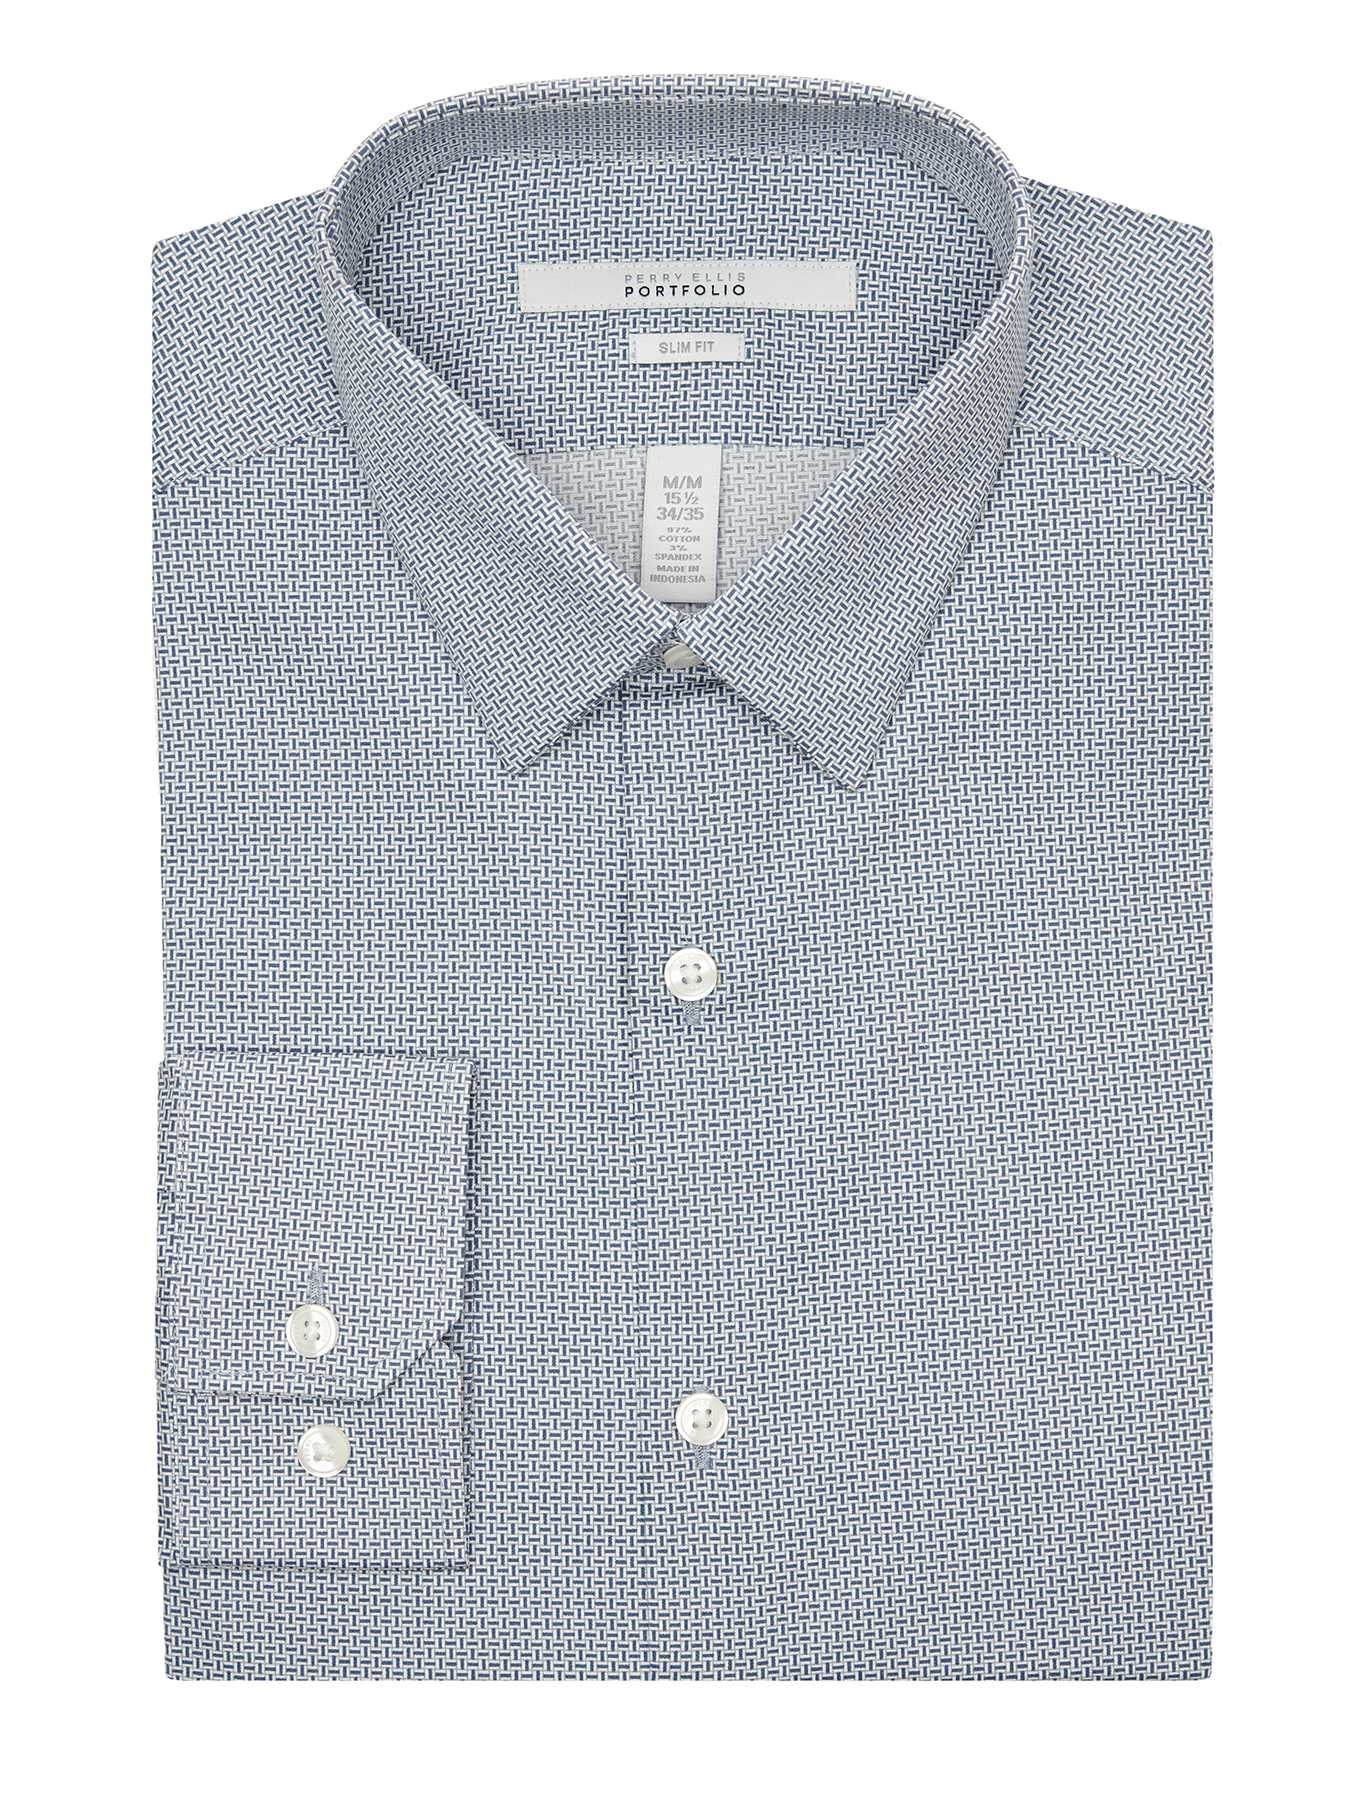 Perry Ellis Slim Fit Uneven Tile Dress Shirt